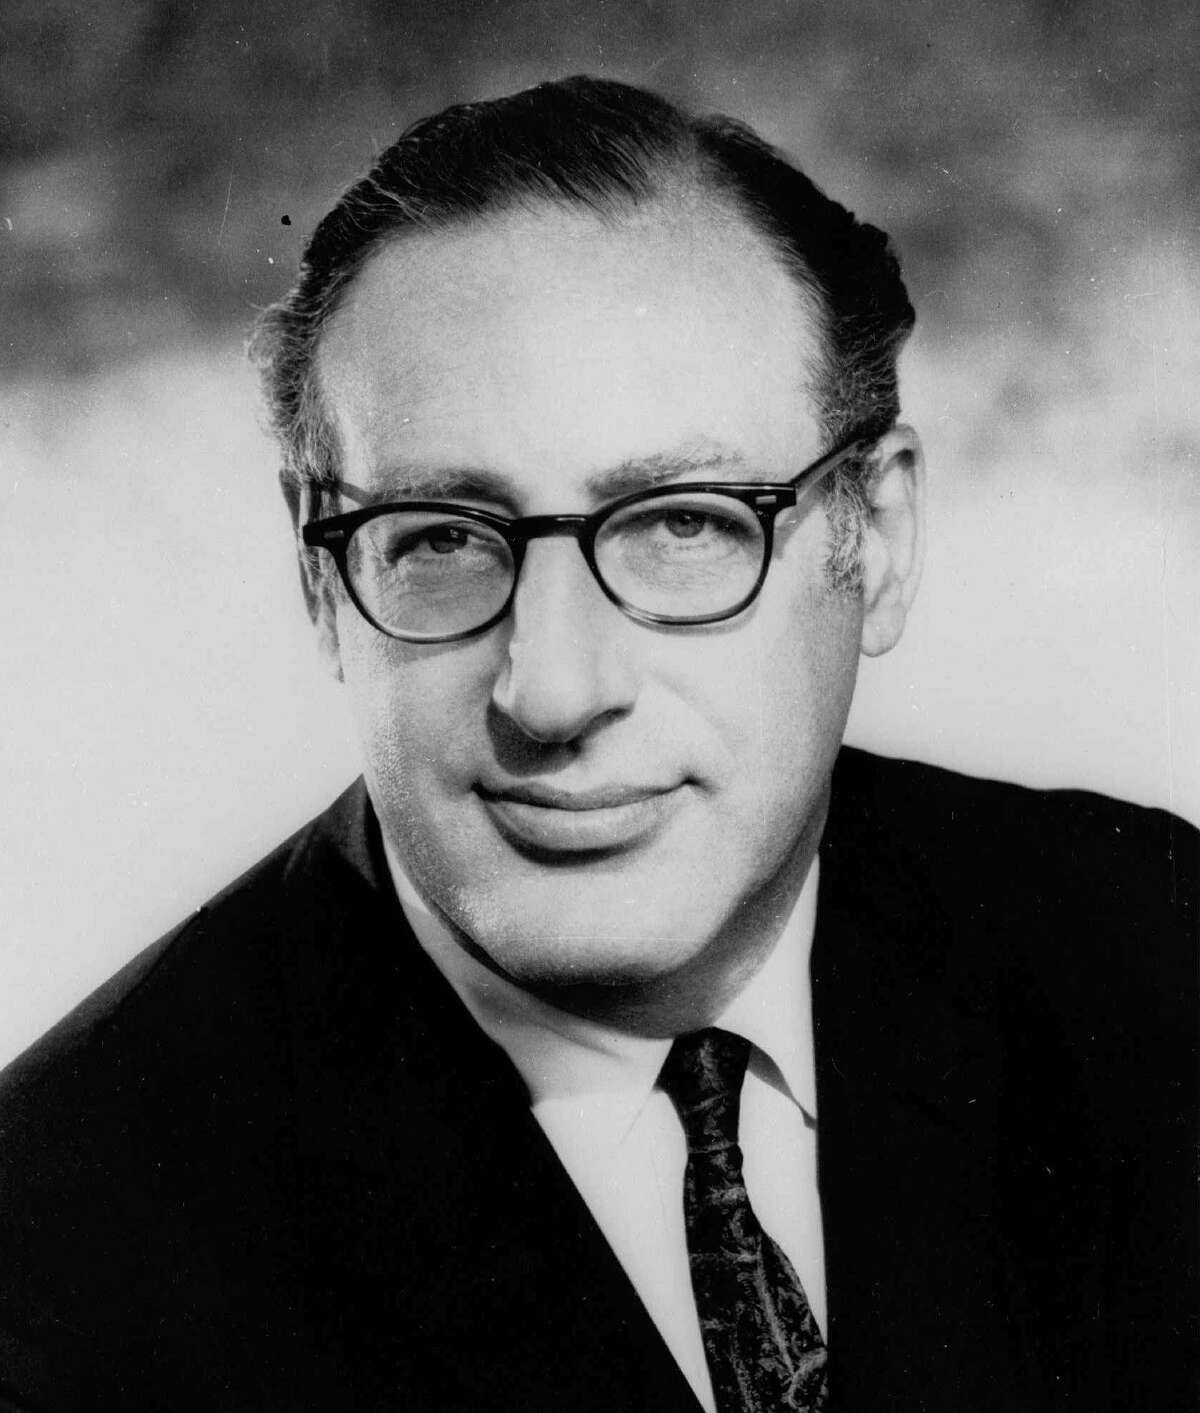 This is a 1970 file photo of Fred Friendly, former president of CBS News. Friendly, the pioneering television producer and onetime president of CBS News, died March 3, 1998, after a series of strokes.